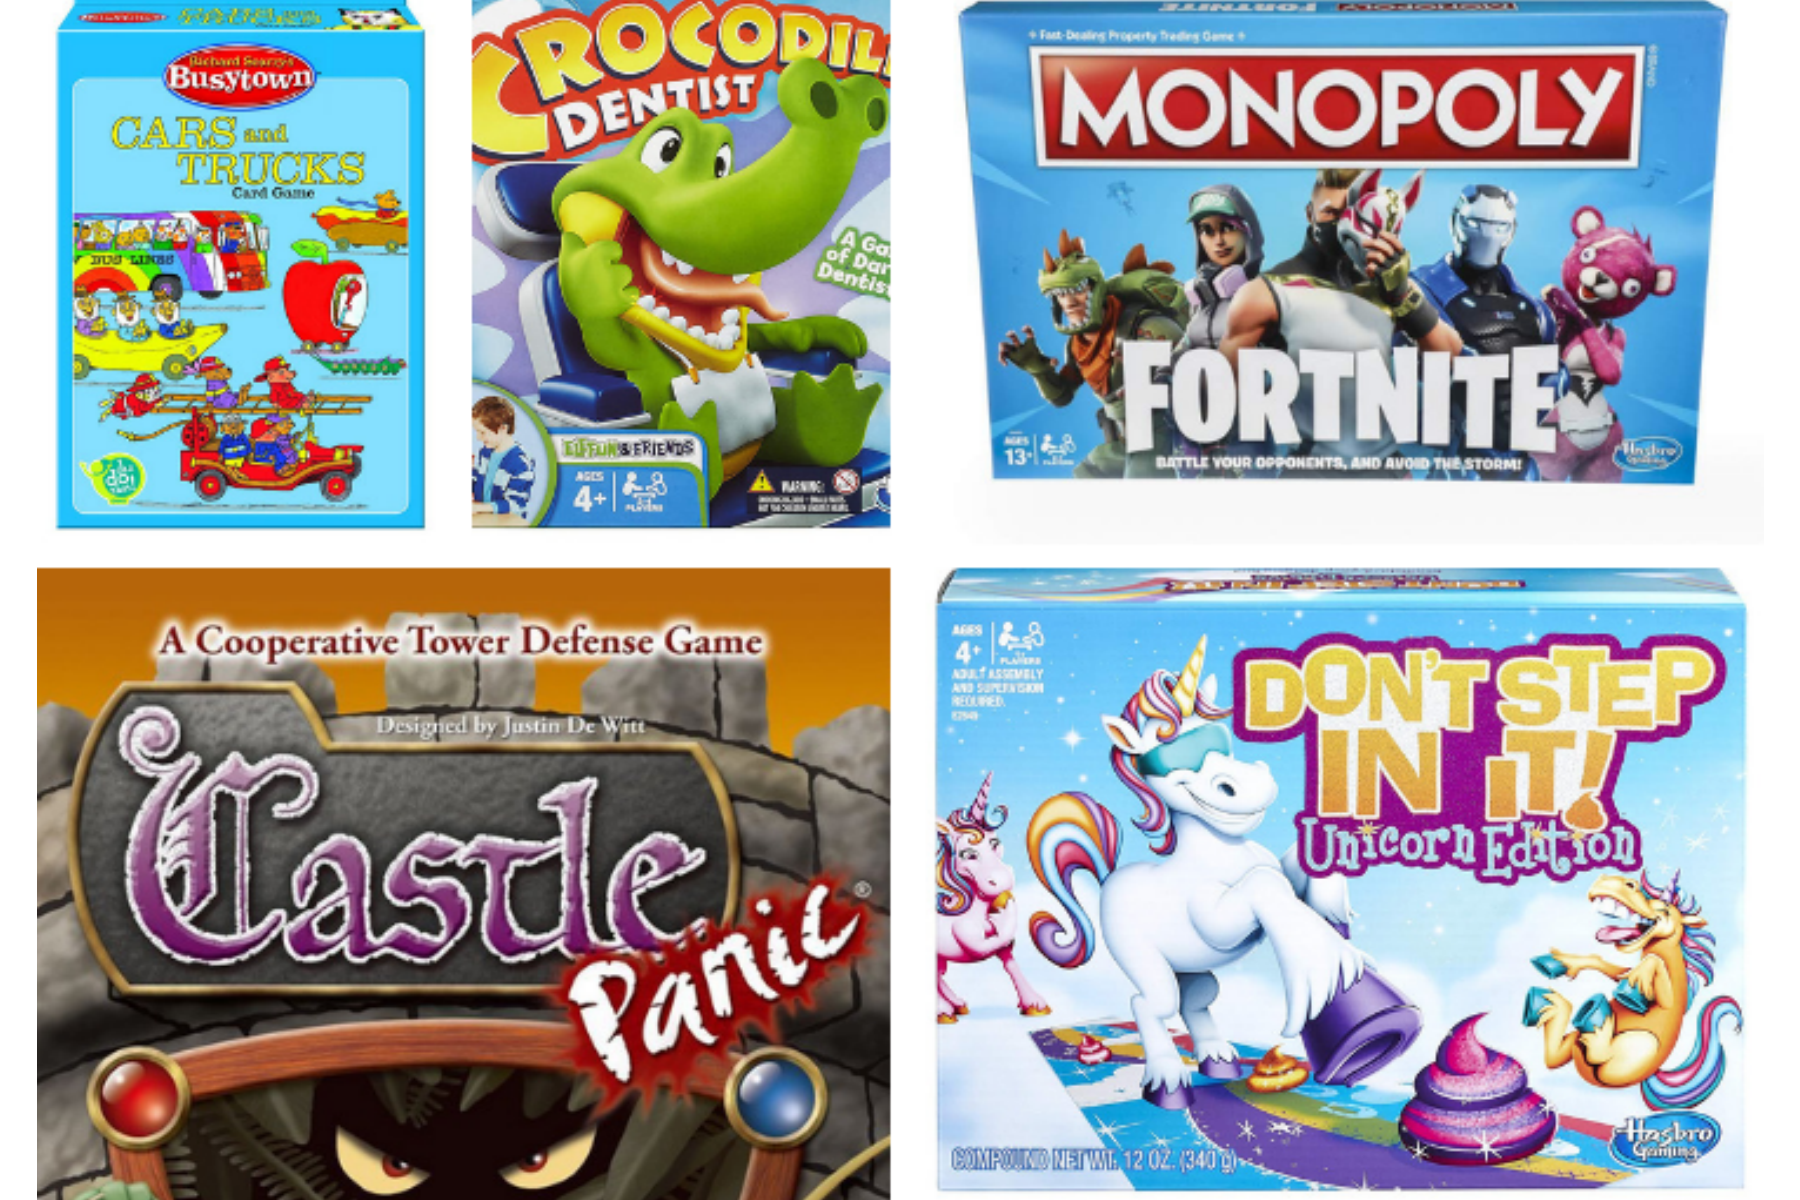 30+ of the Best Board Games for Kids of All Ages - Seeing Dandy